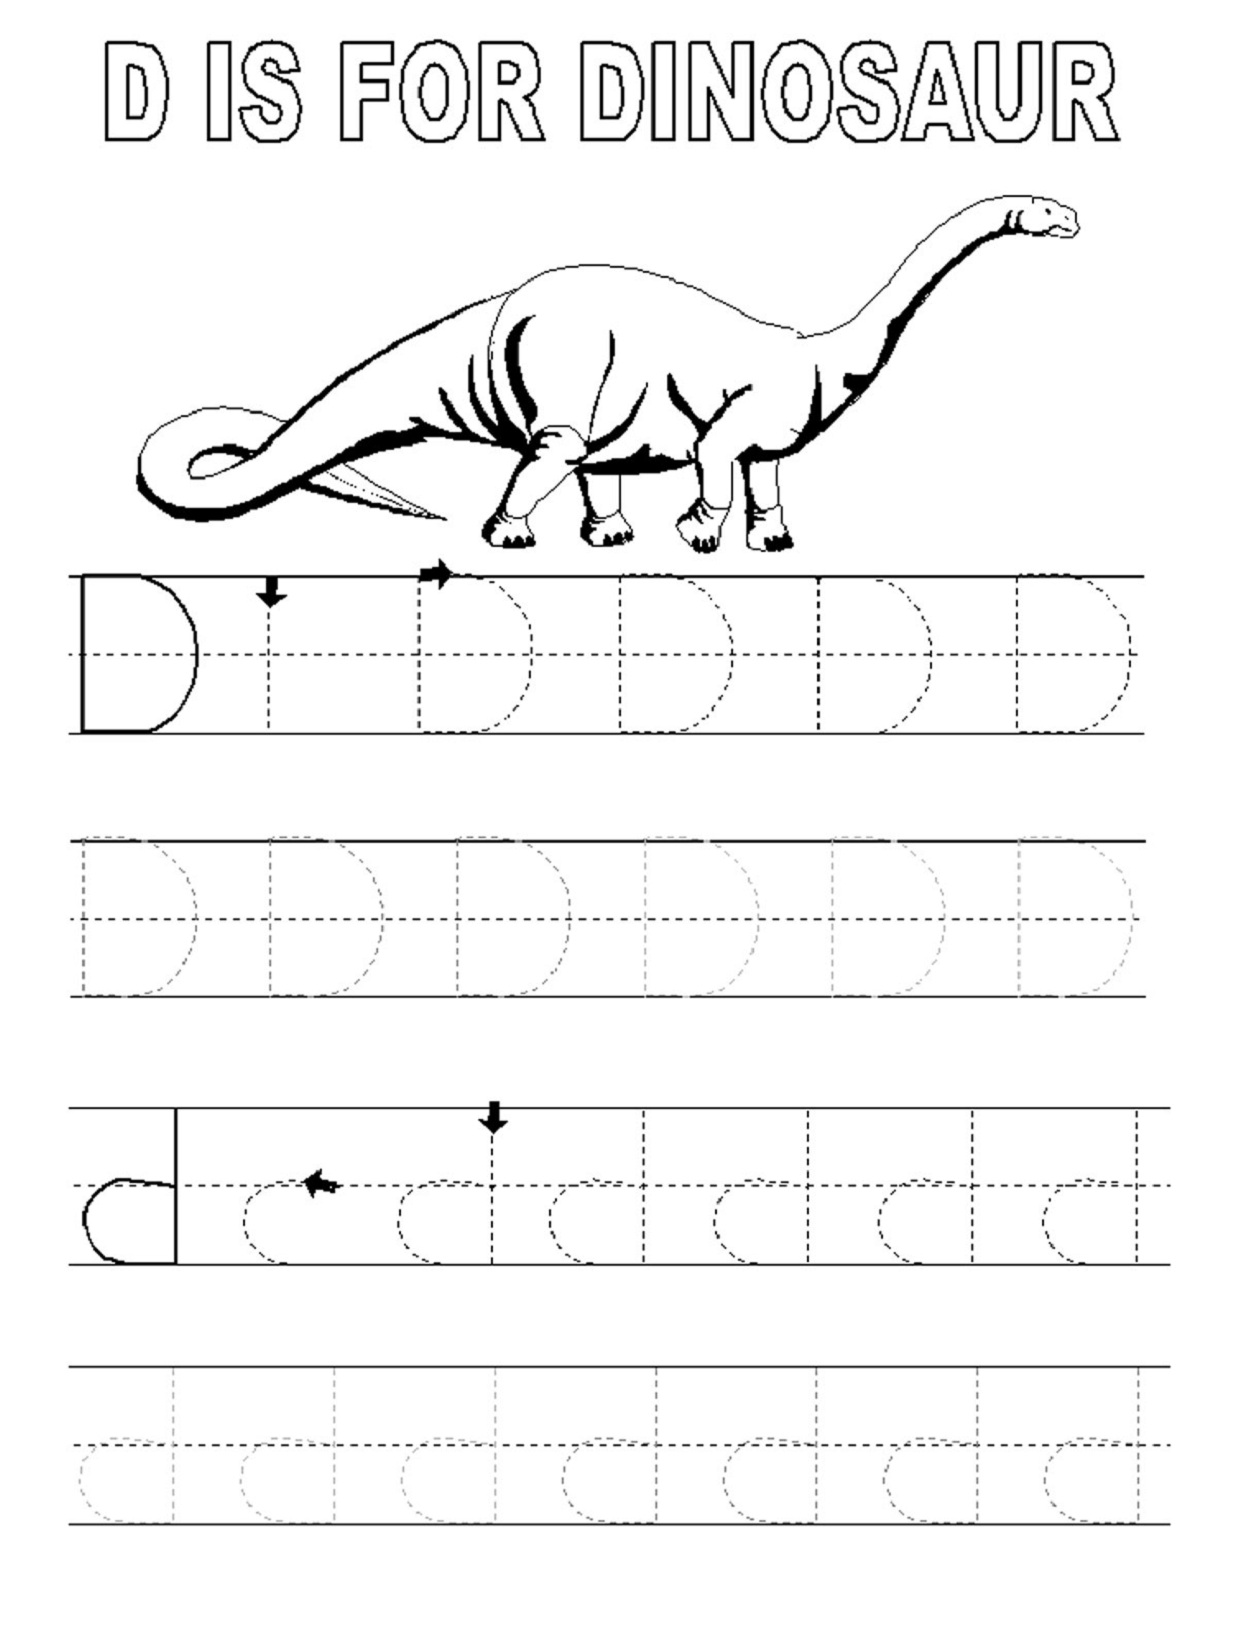 traceable letter worksheets D Dinosaur